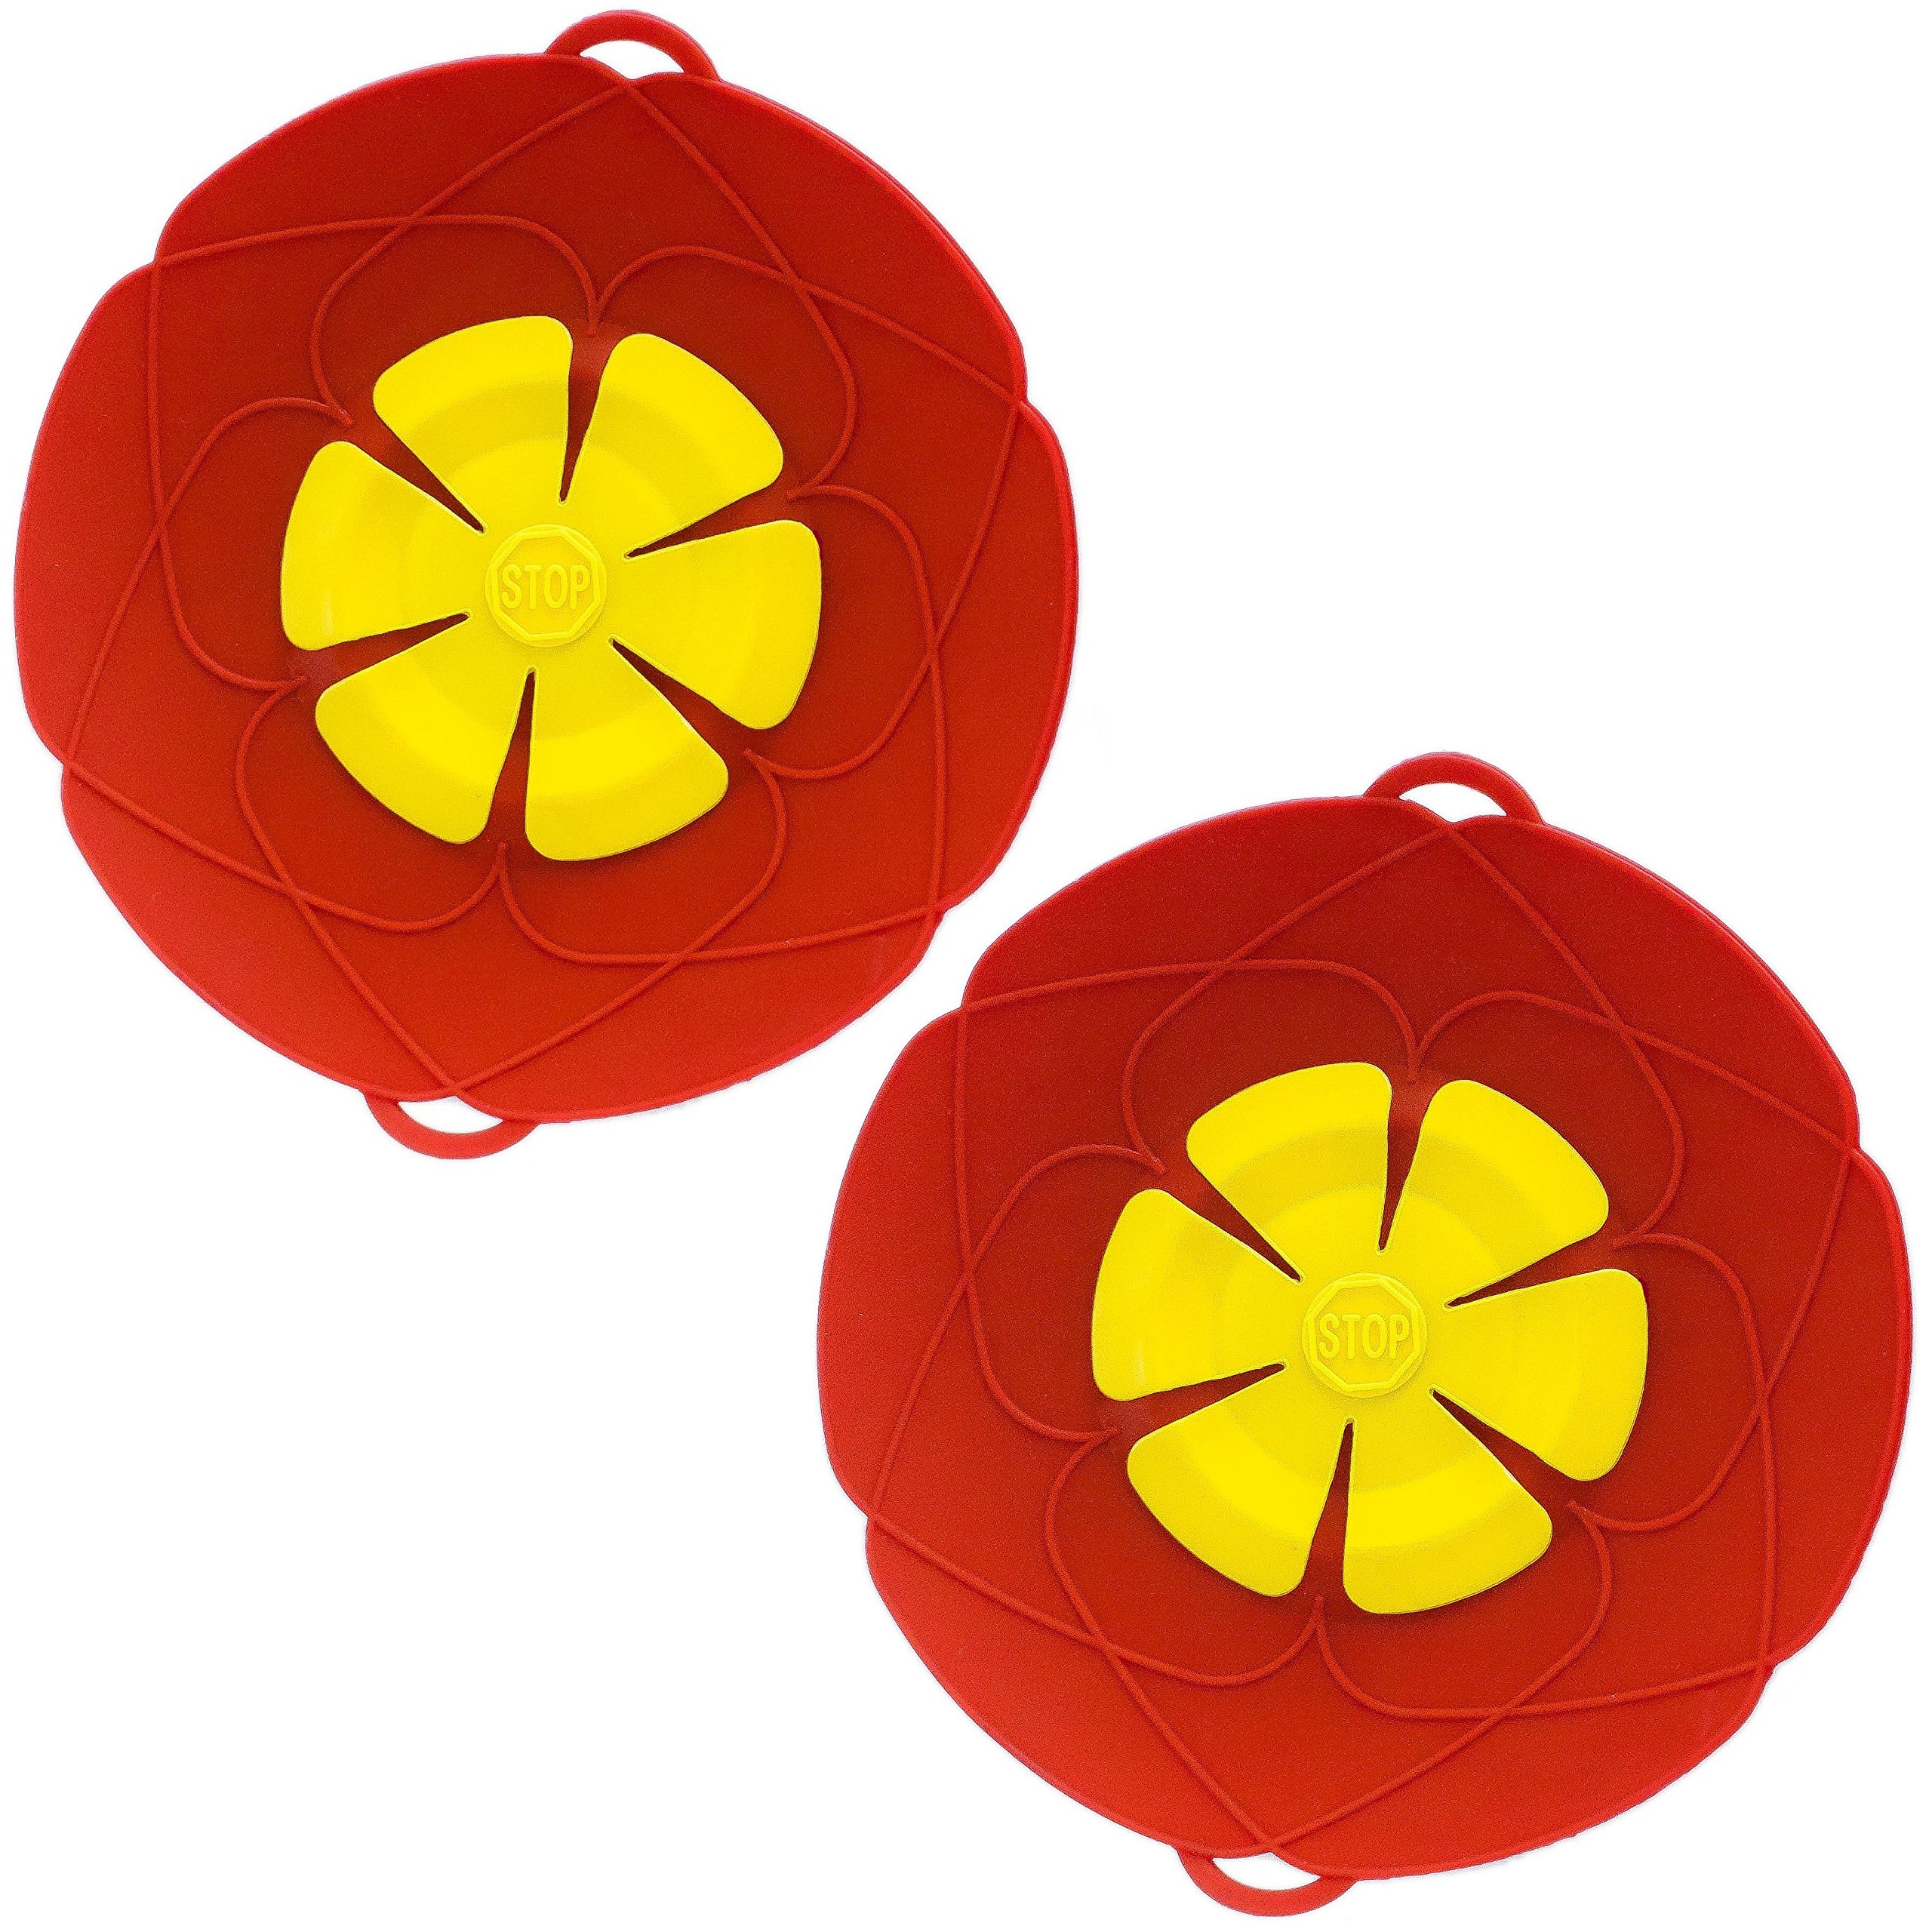 PureGenius Spill Stopper X 2, 10.2-Inch Silicone Lid for Pots And Pans, Boil-Over Stopper, Boil Safeguard, Multipurpose Kitchen Tool. (2, Red)